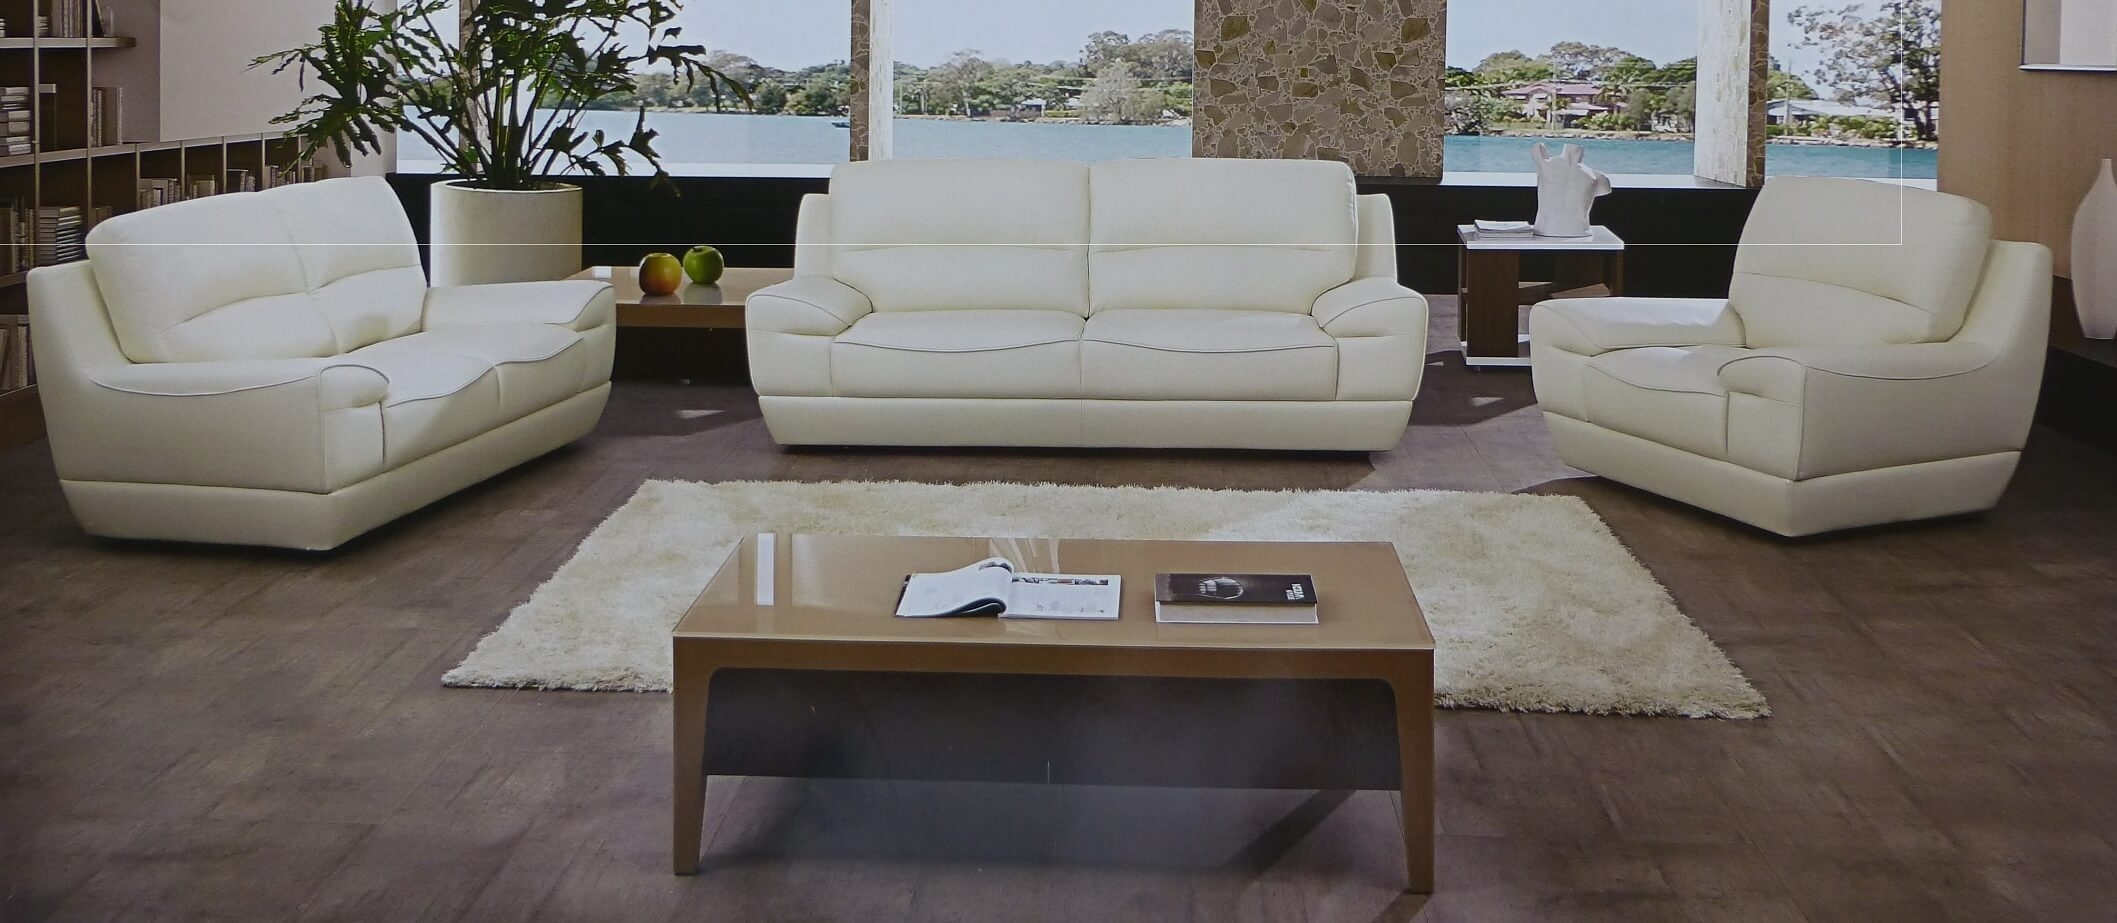 Off White Leather Sofa 77 With Off White Leather Sofa | Bcctl pertaining to Off White Leather Sofas (Image 7 of 10)